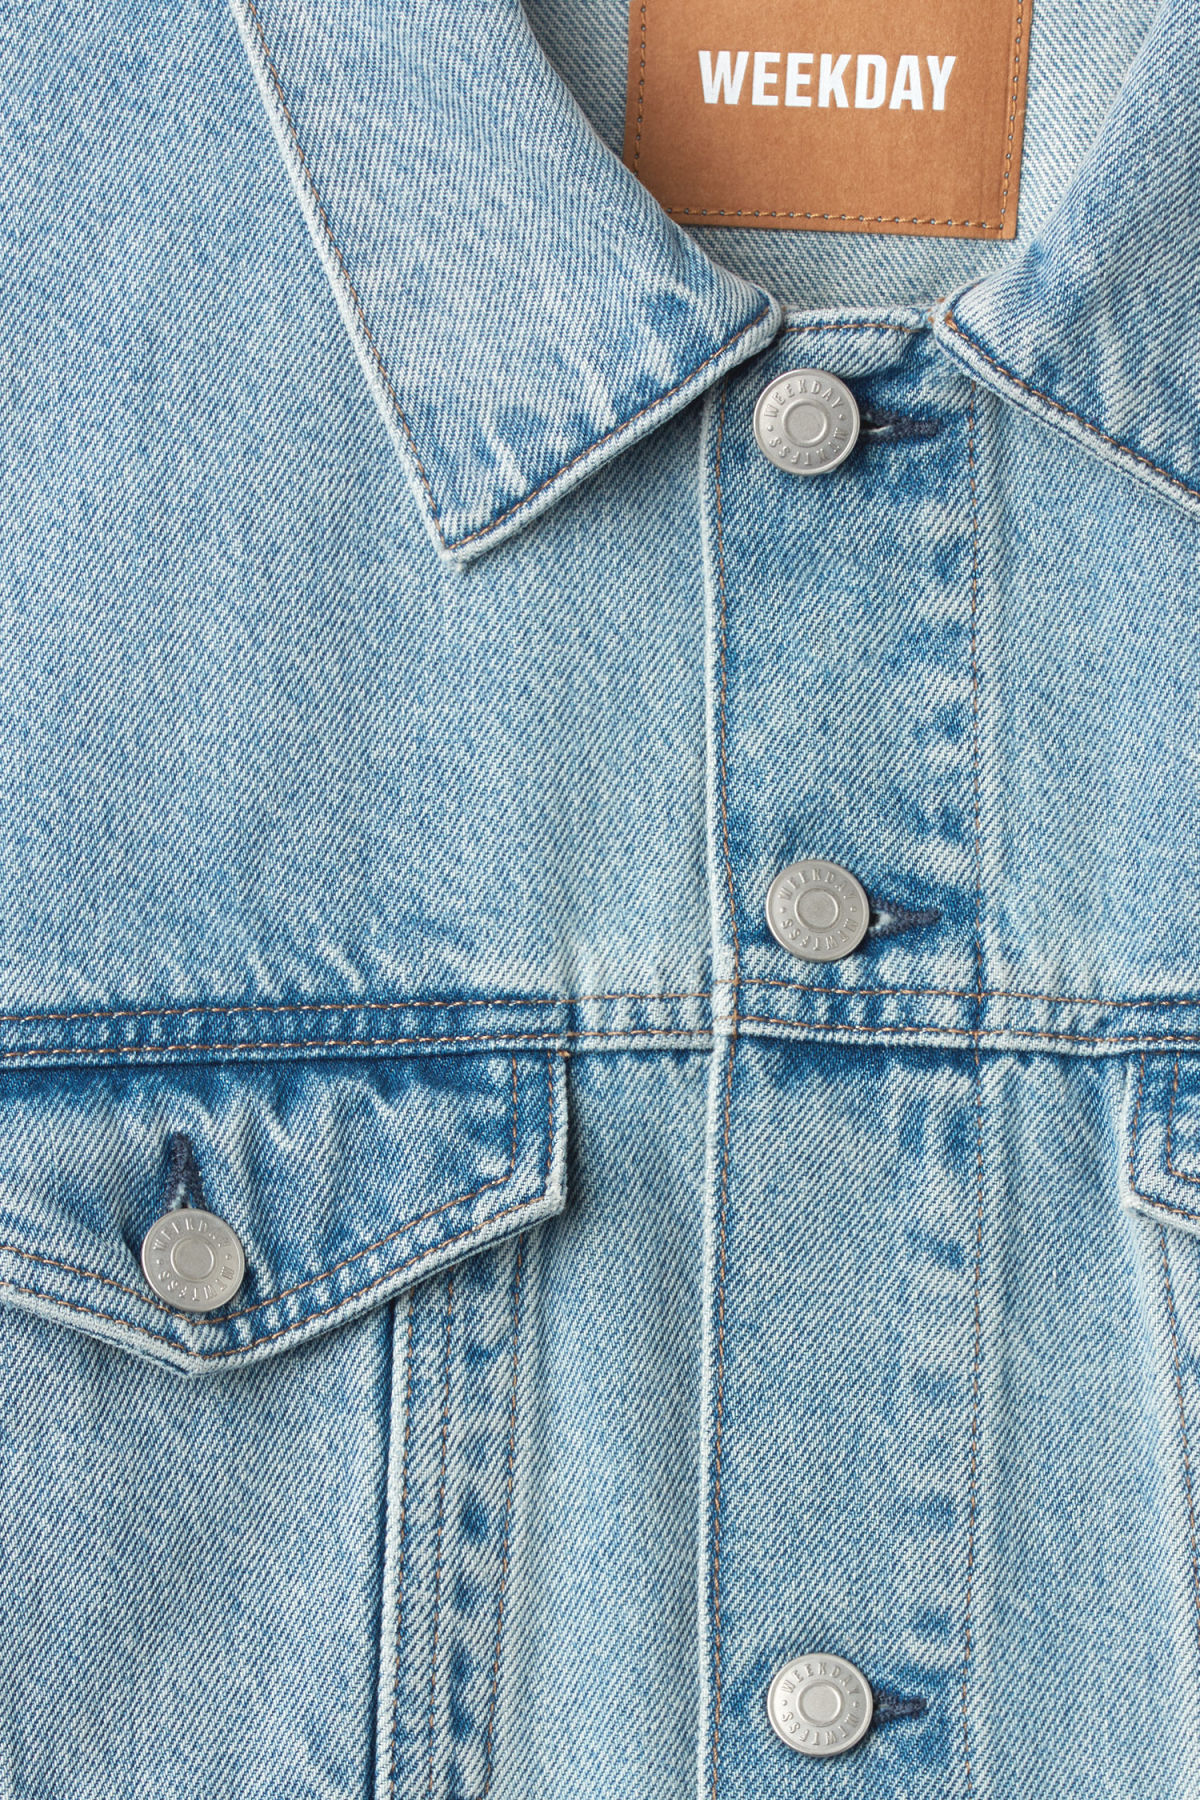 Detailed image of Weekday single jacket spring blue in blue